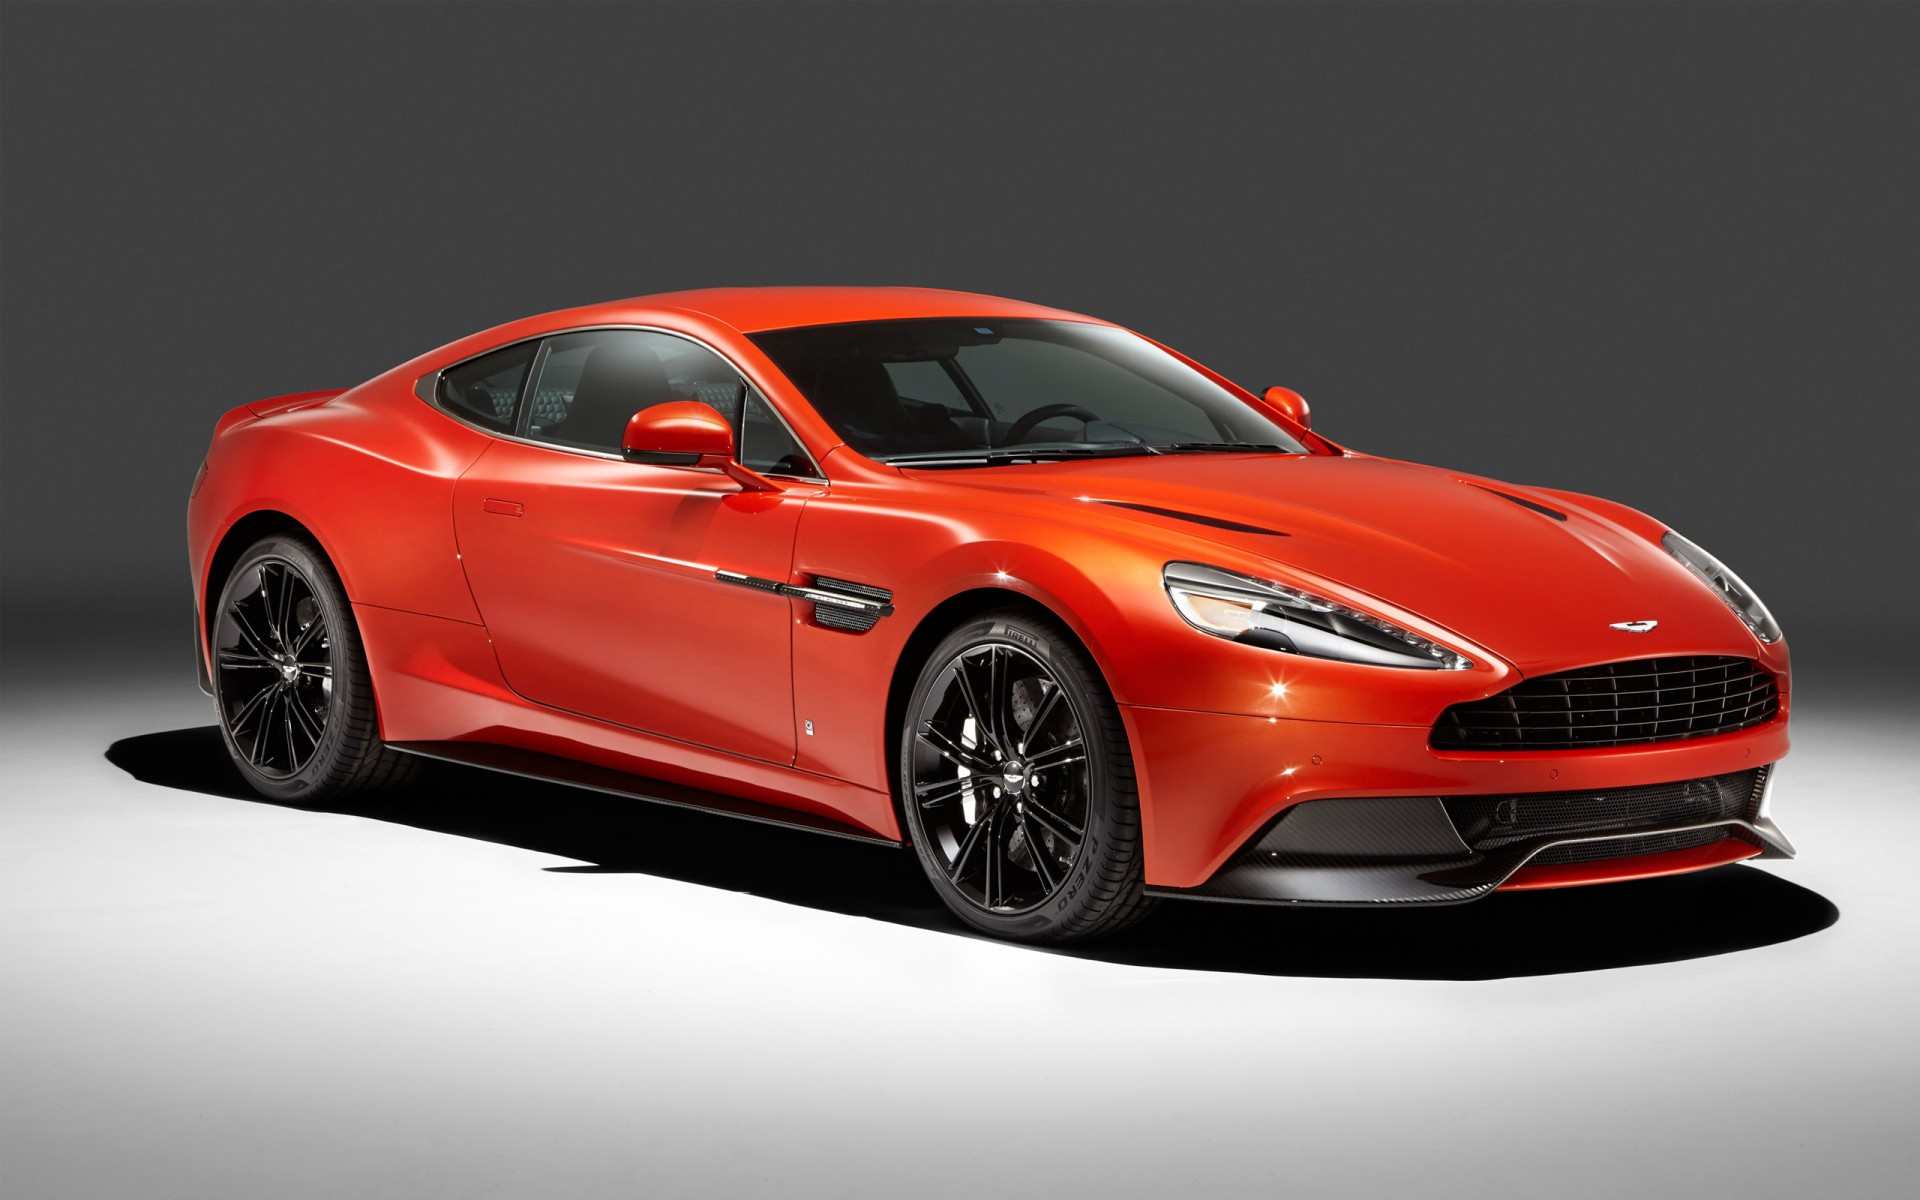 2014 q by aston martin vanquish coupe wallpaper hd car wallpapers id 4703. Black Bedroom Furniture Sets. Home Design Ideas